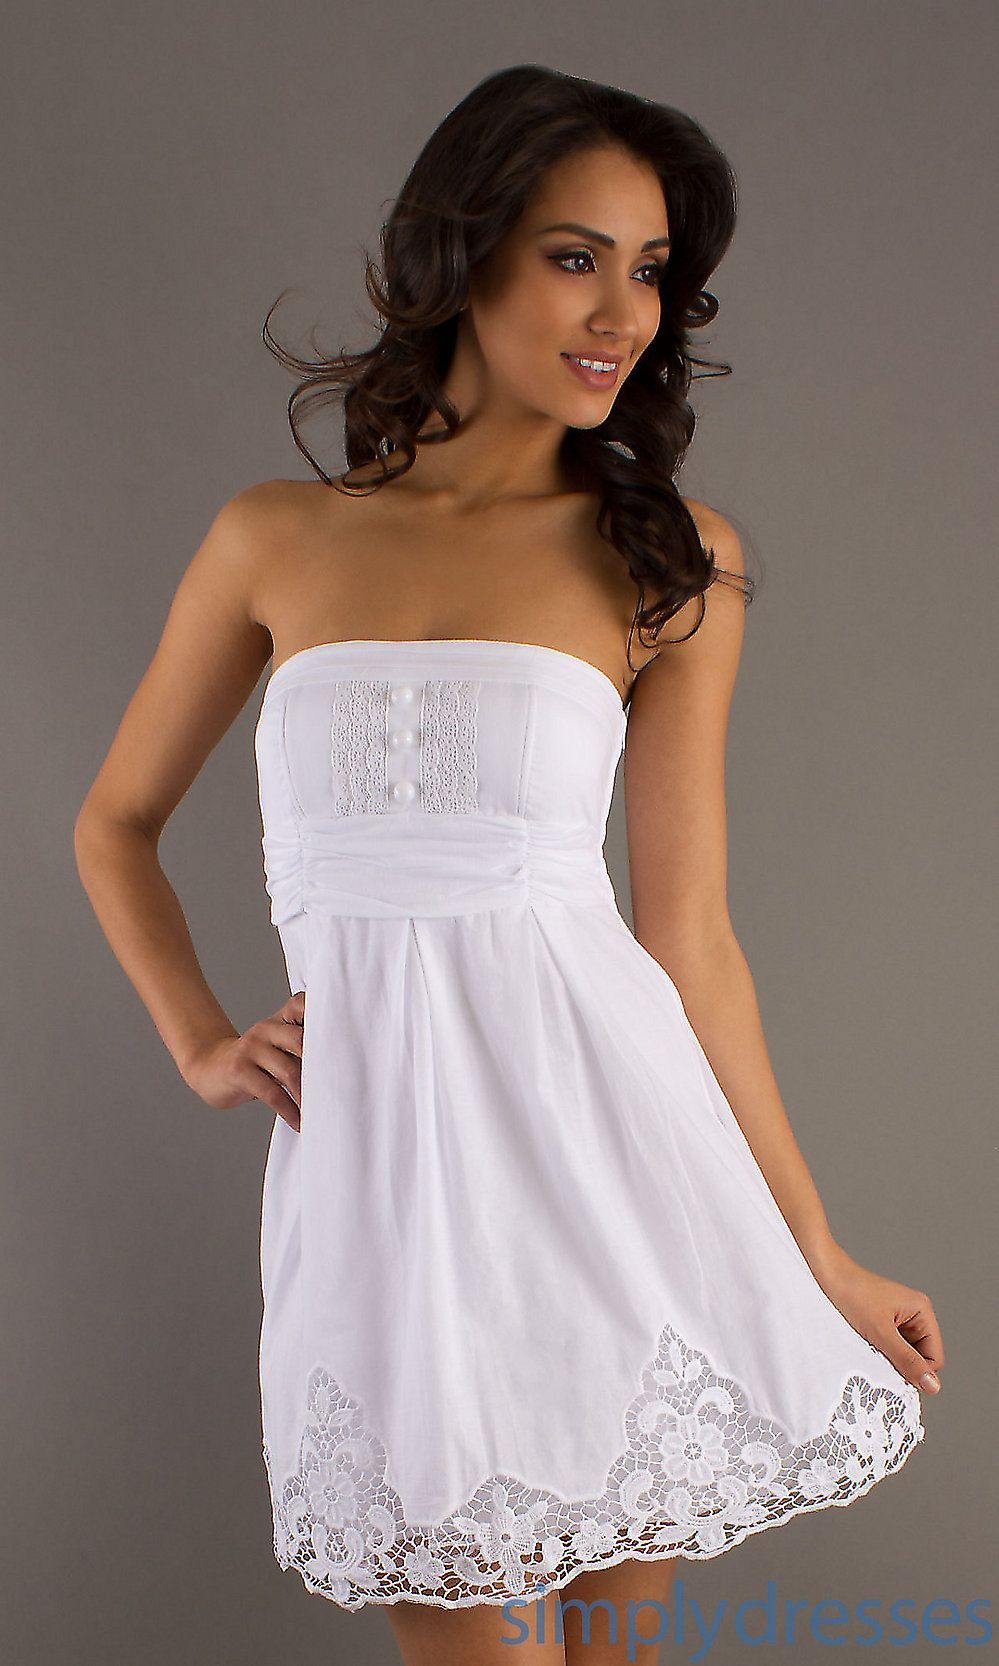 Fashion style White Short summer dresses for women for lady